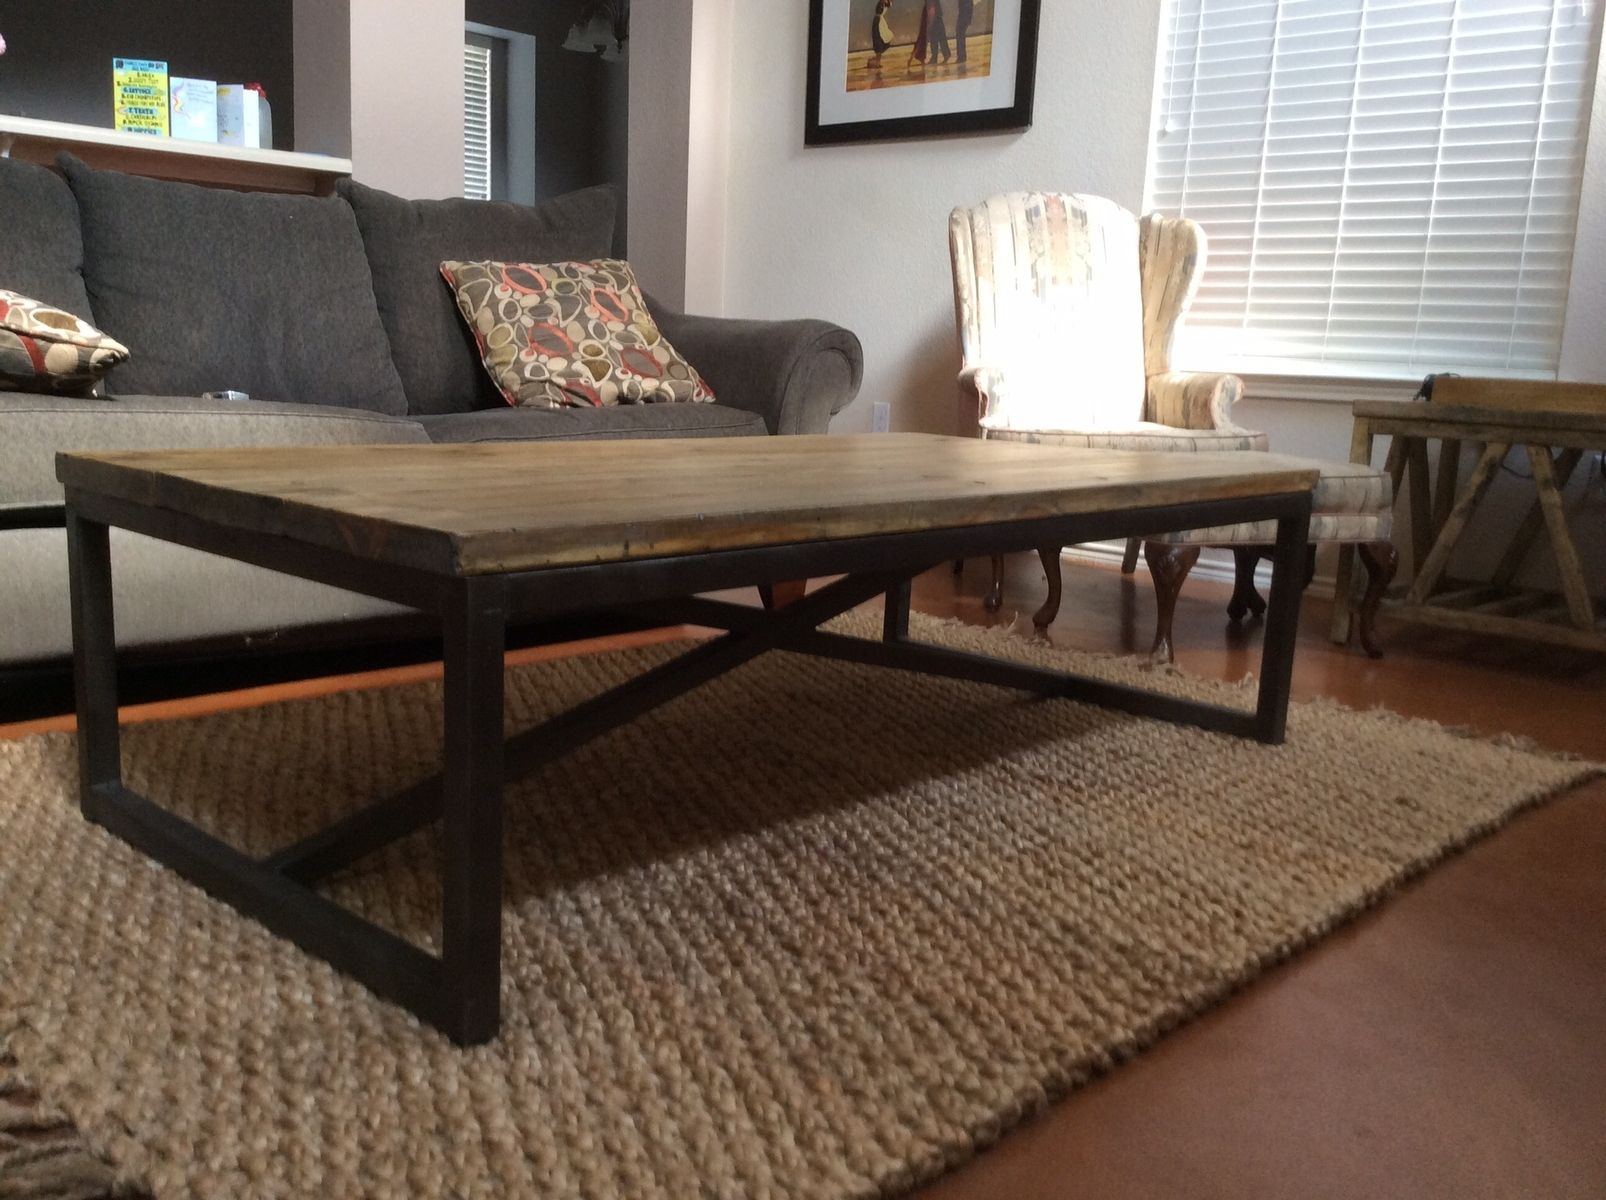 Handmade Rustic X Brace Coffee Table With Recycled Metal